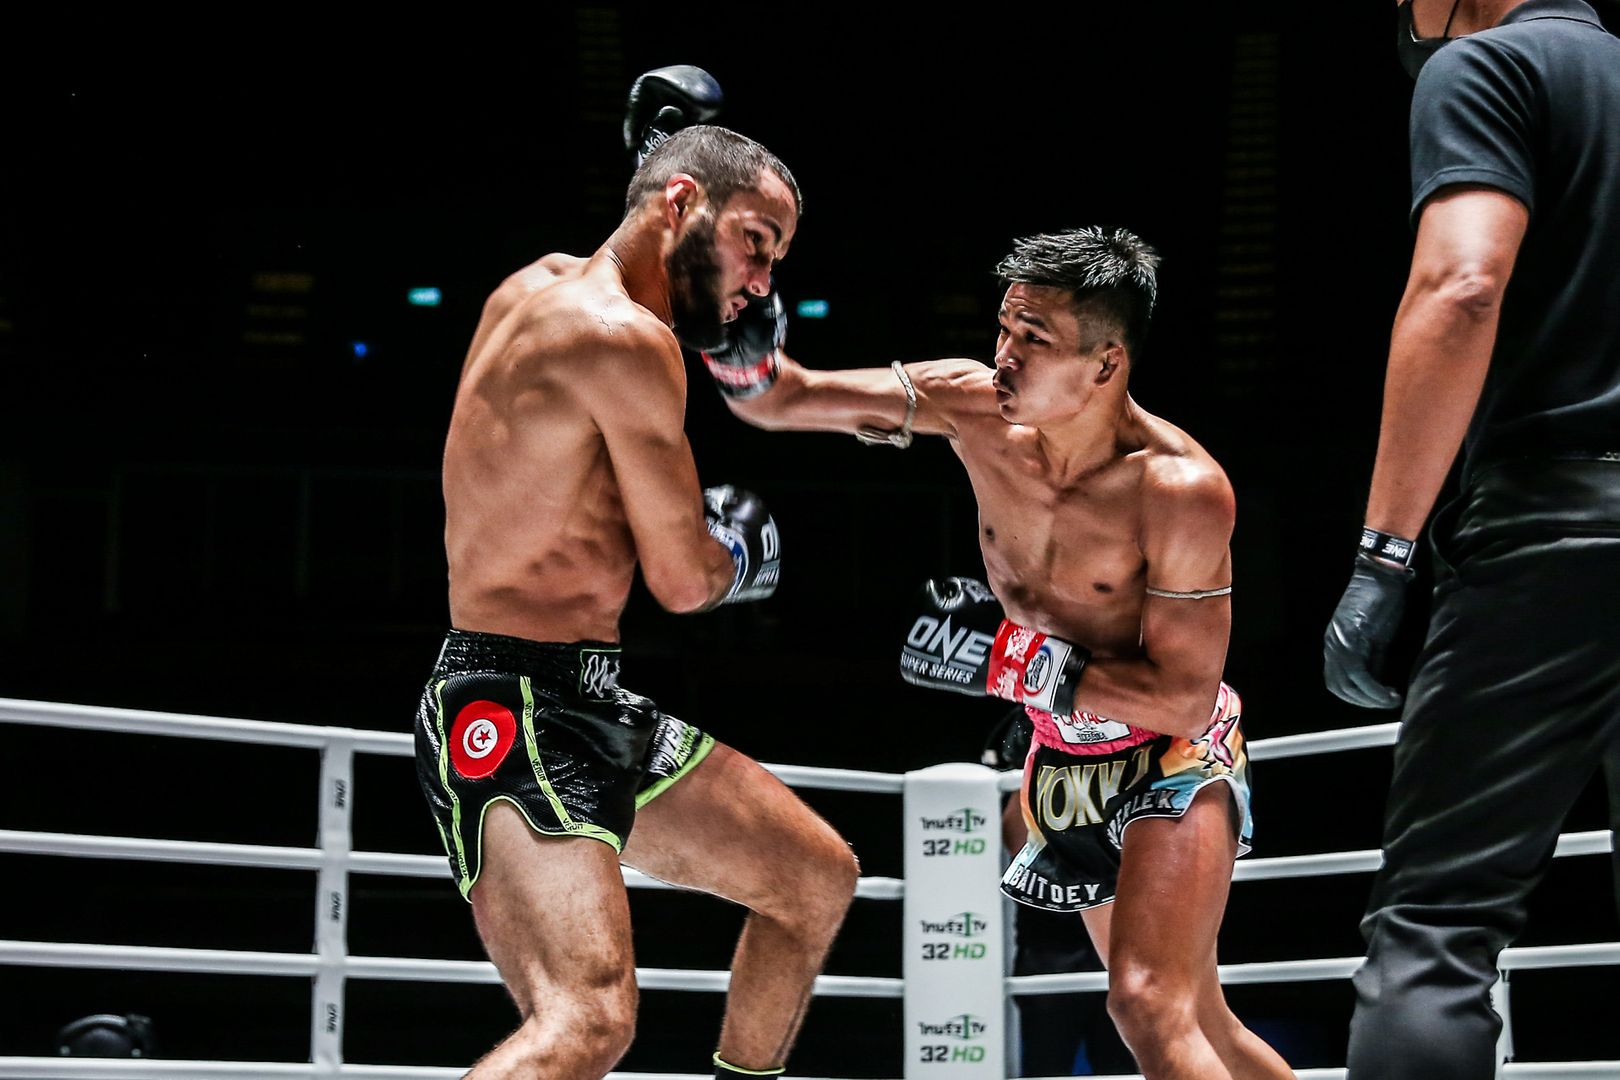 Muay Thai star Superlek Kiatmoo9 battles Fahdi Khaled